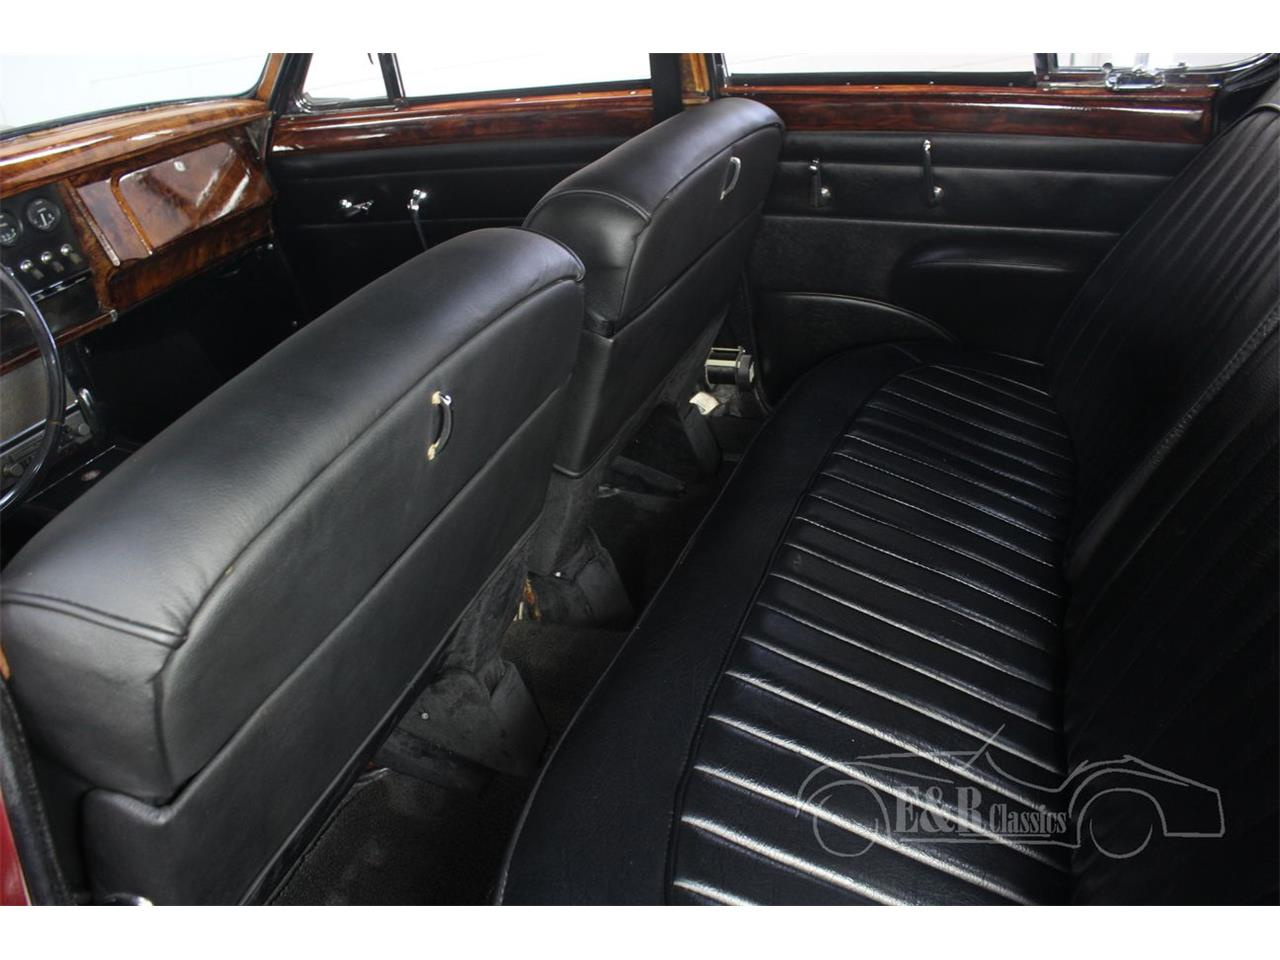 Large Picture of 1960 Jaguar Mark II - $48,200.00 Offered by E & R Classics - QJZJ